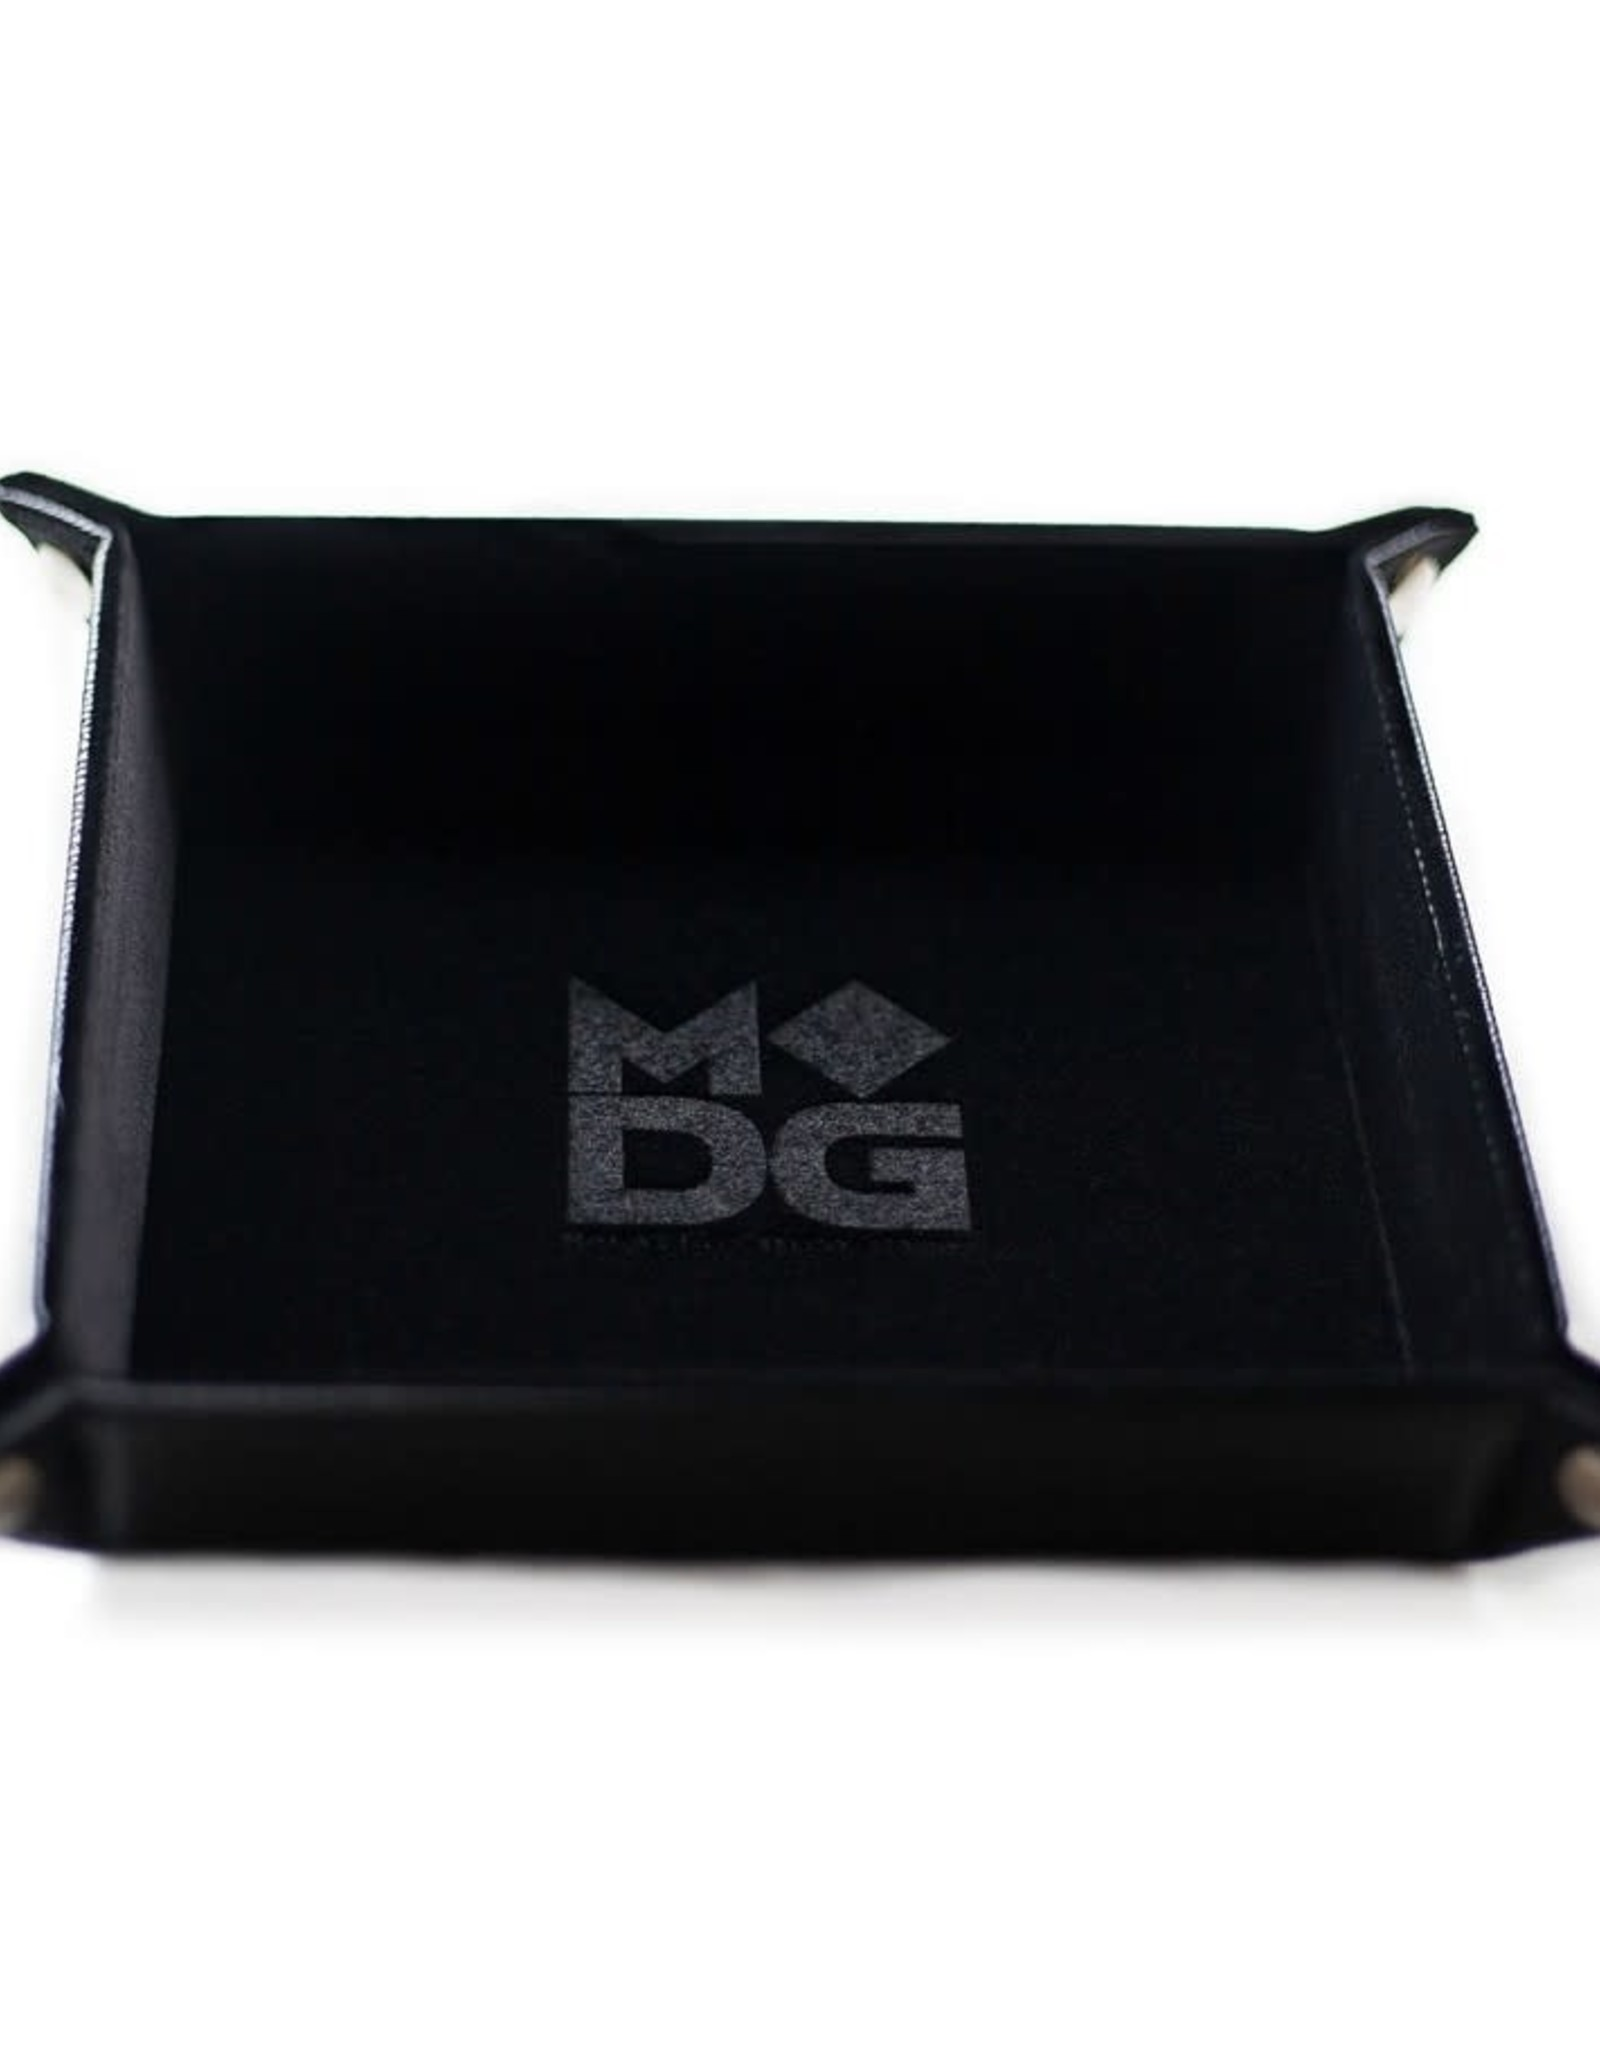 Metallic Dice Games Dice Tray: Velvet Folding with Leather Backing Black